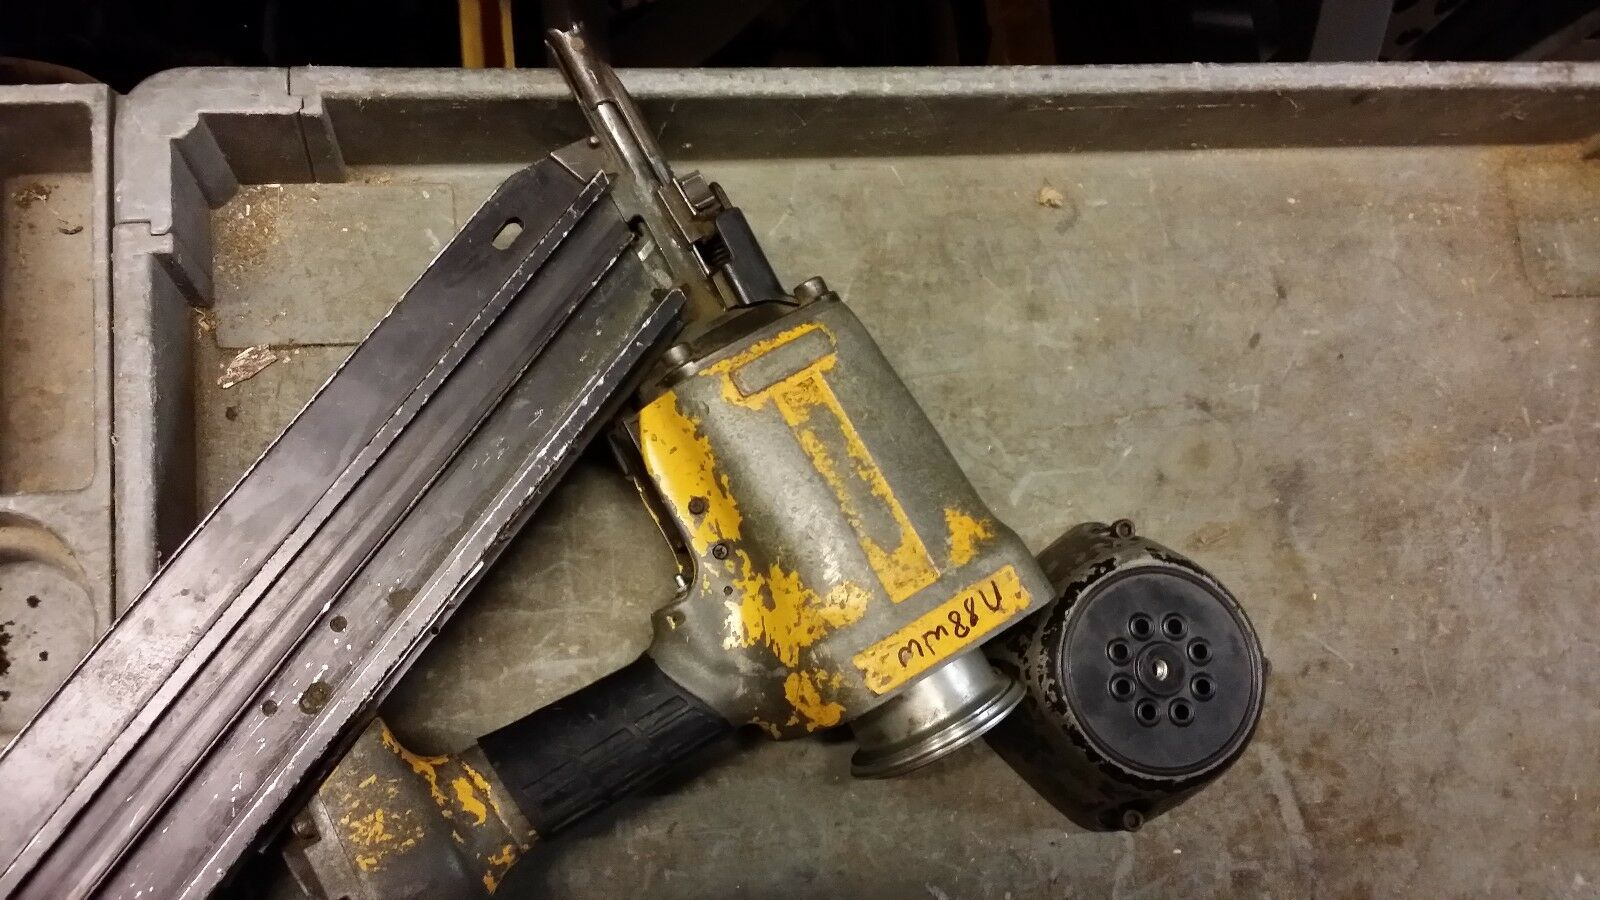 USED 108721 PISTON DRIVER FOR N88WW -  ENTIRE PICTURE NOT FOR SALE